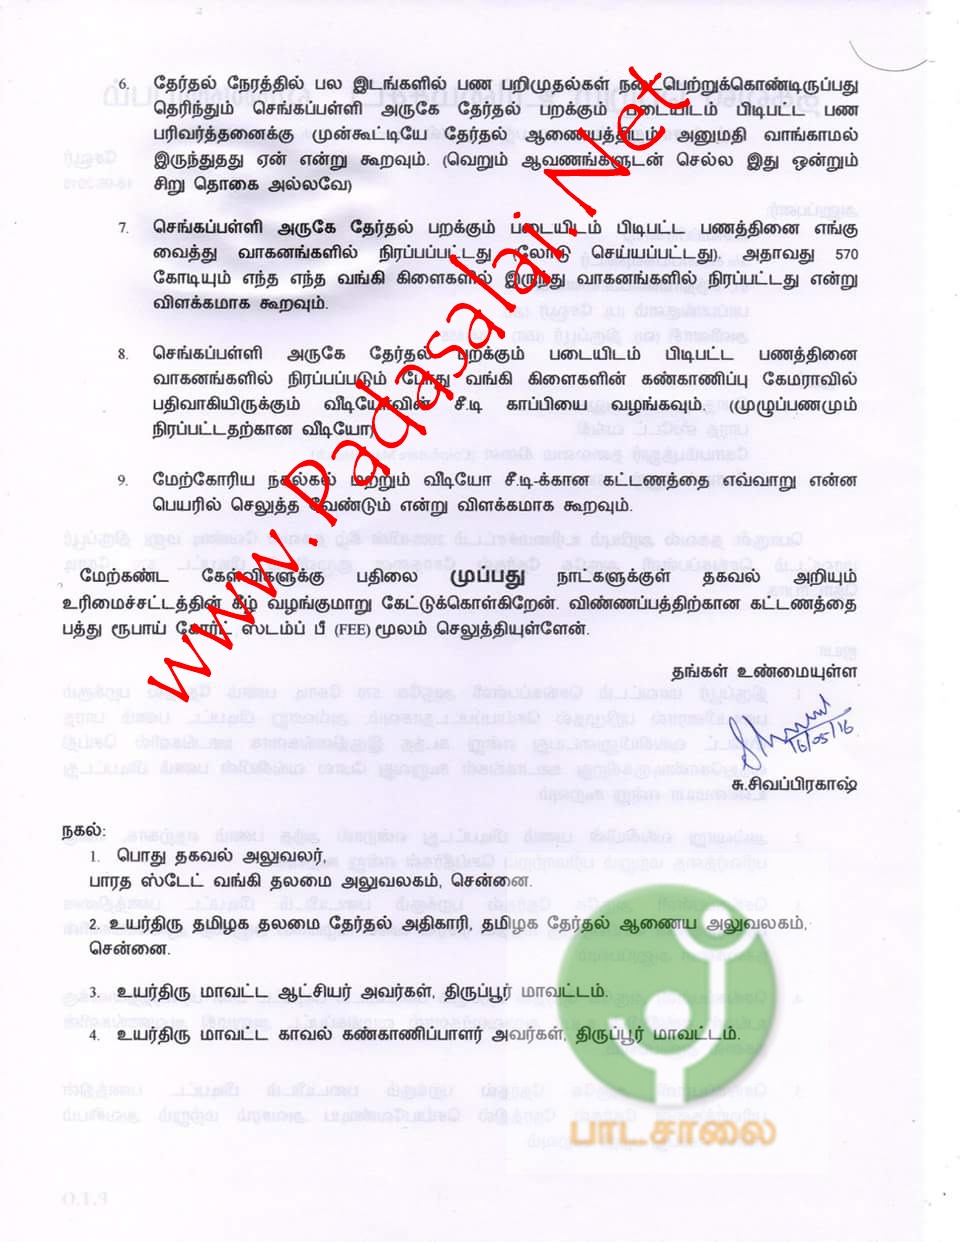 570 crore ceased regarding rti letter click here download rti letter in pdf format spiritdancerdesigns Gallery